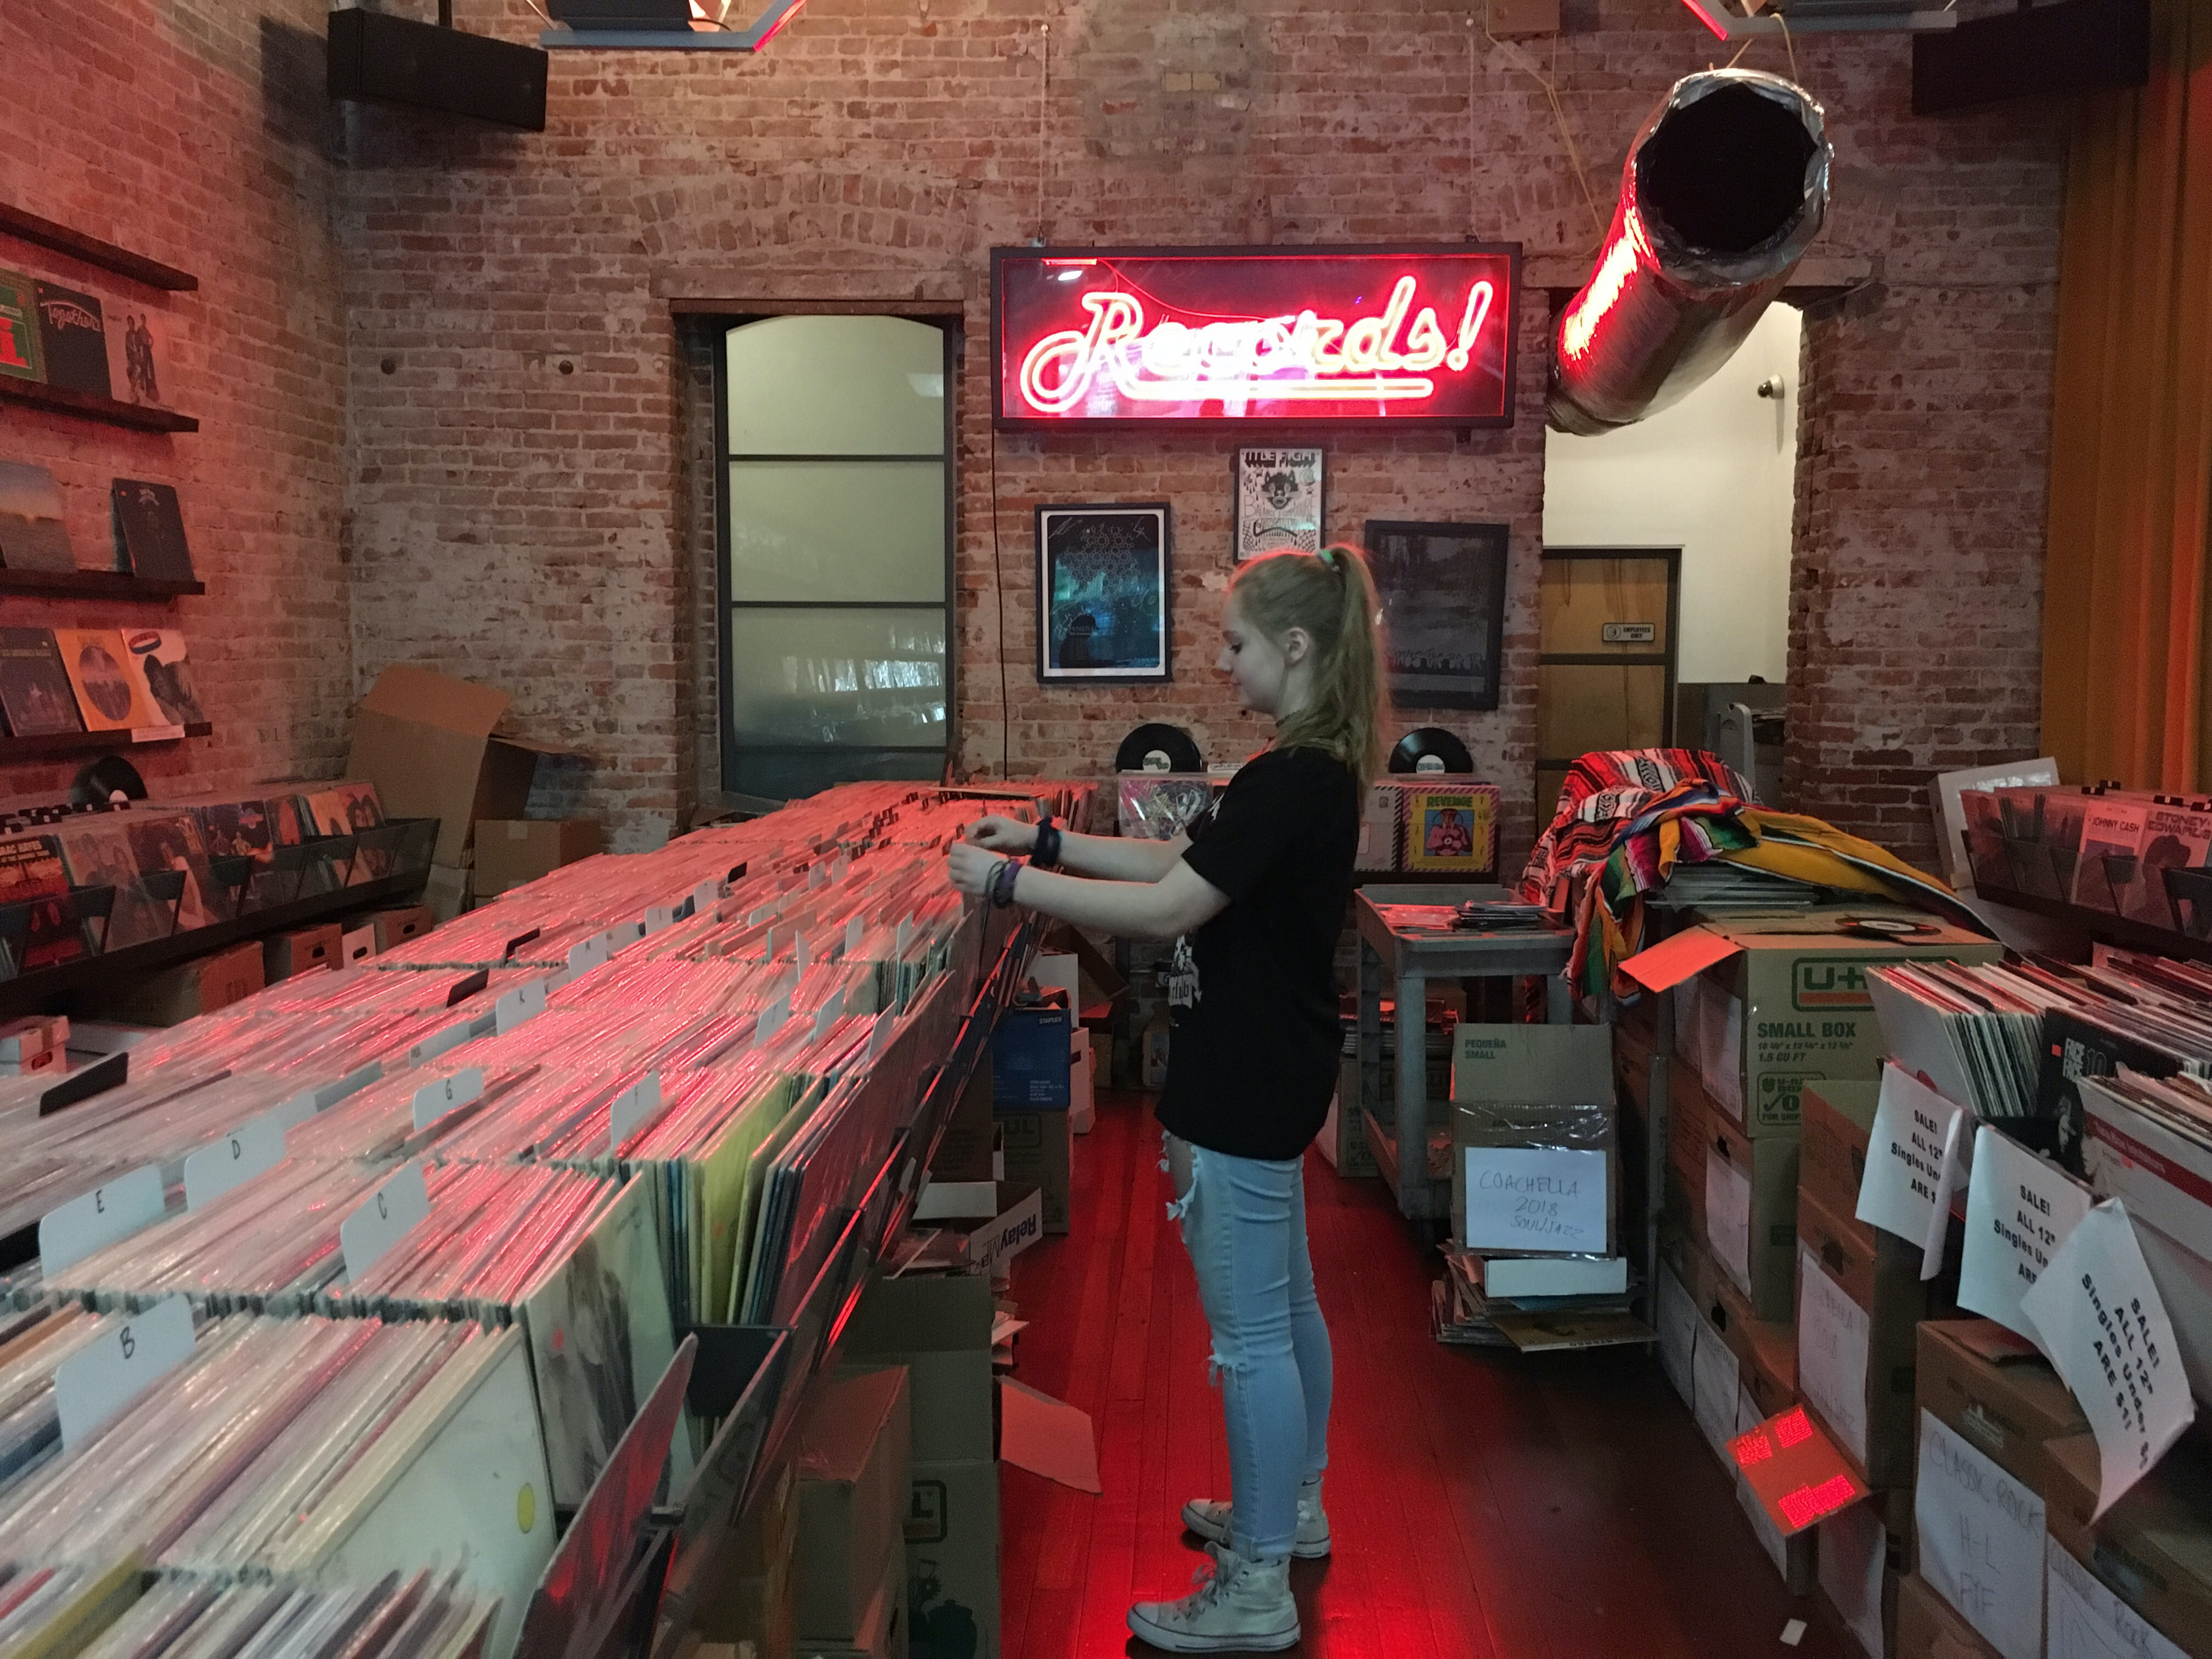 girl standing in front of books